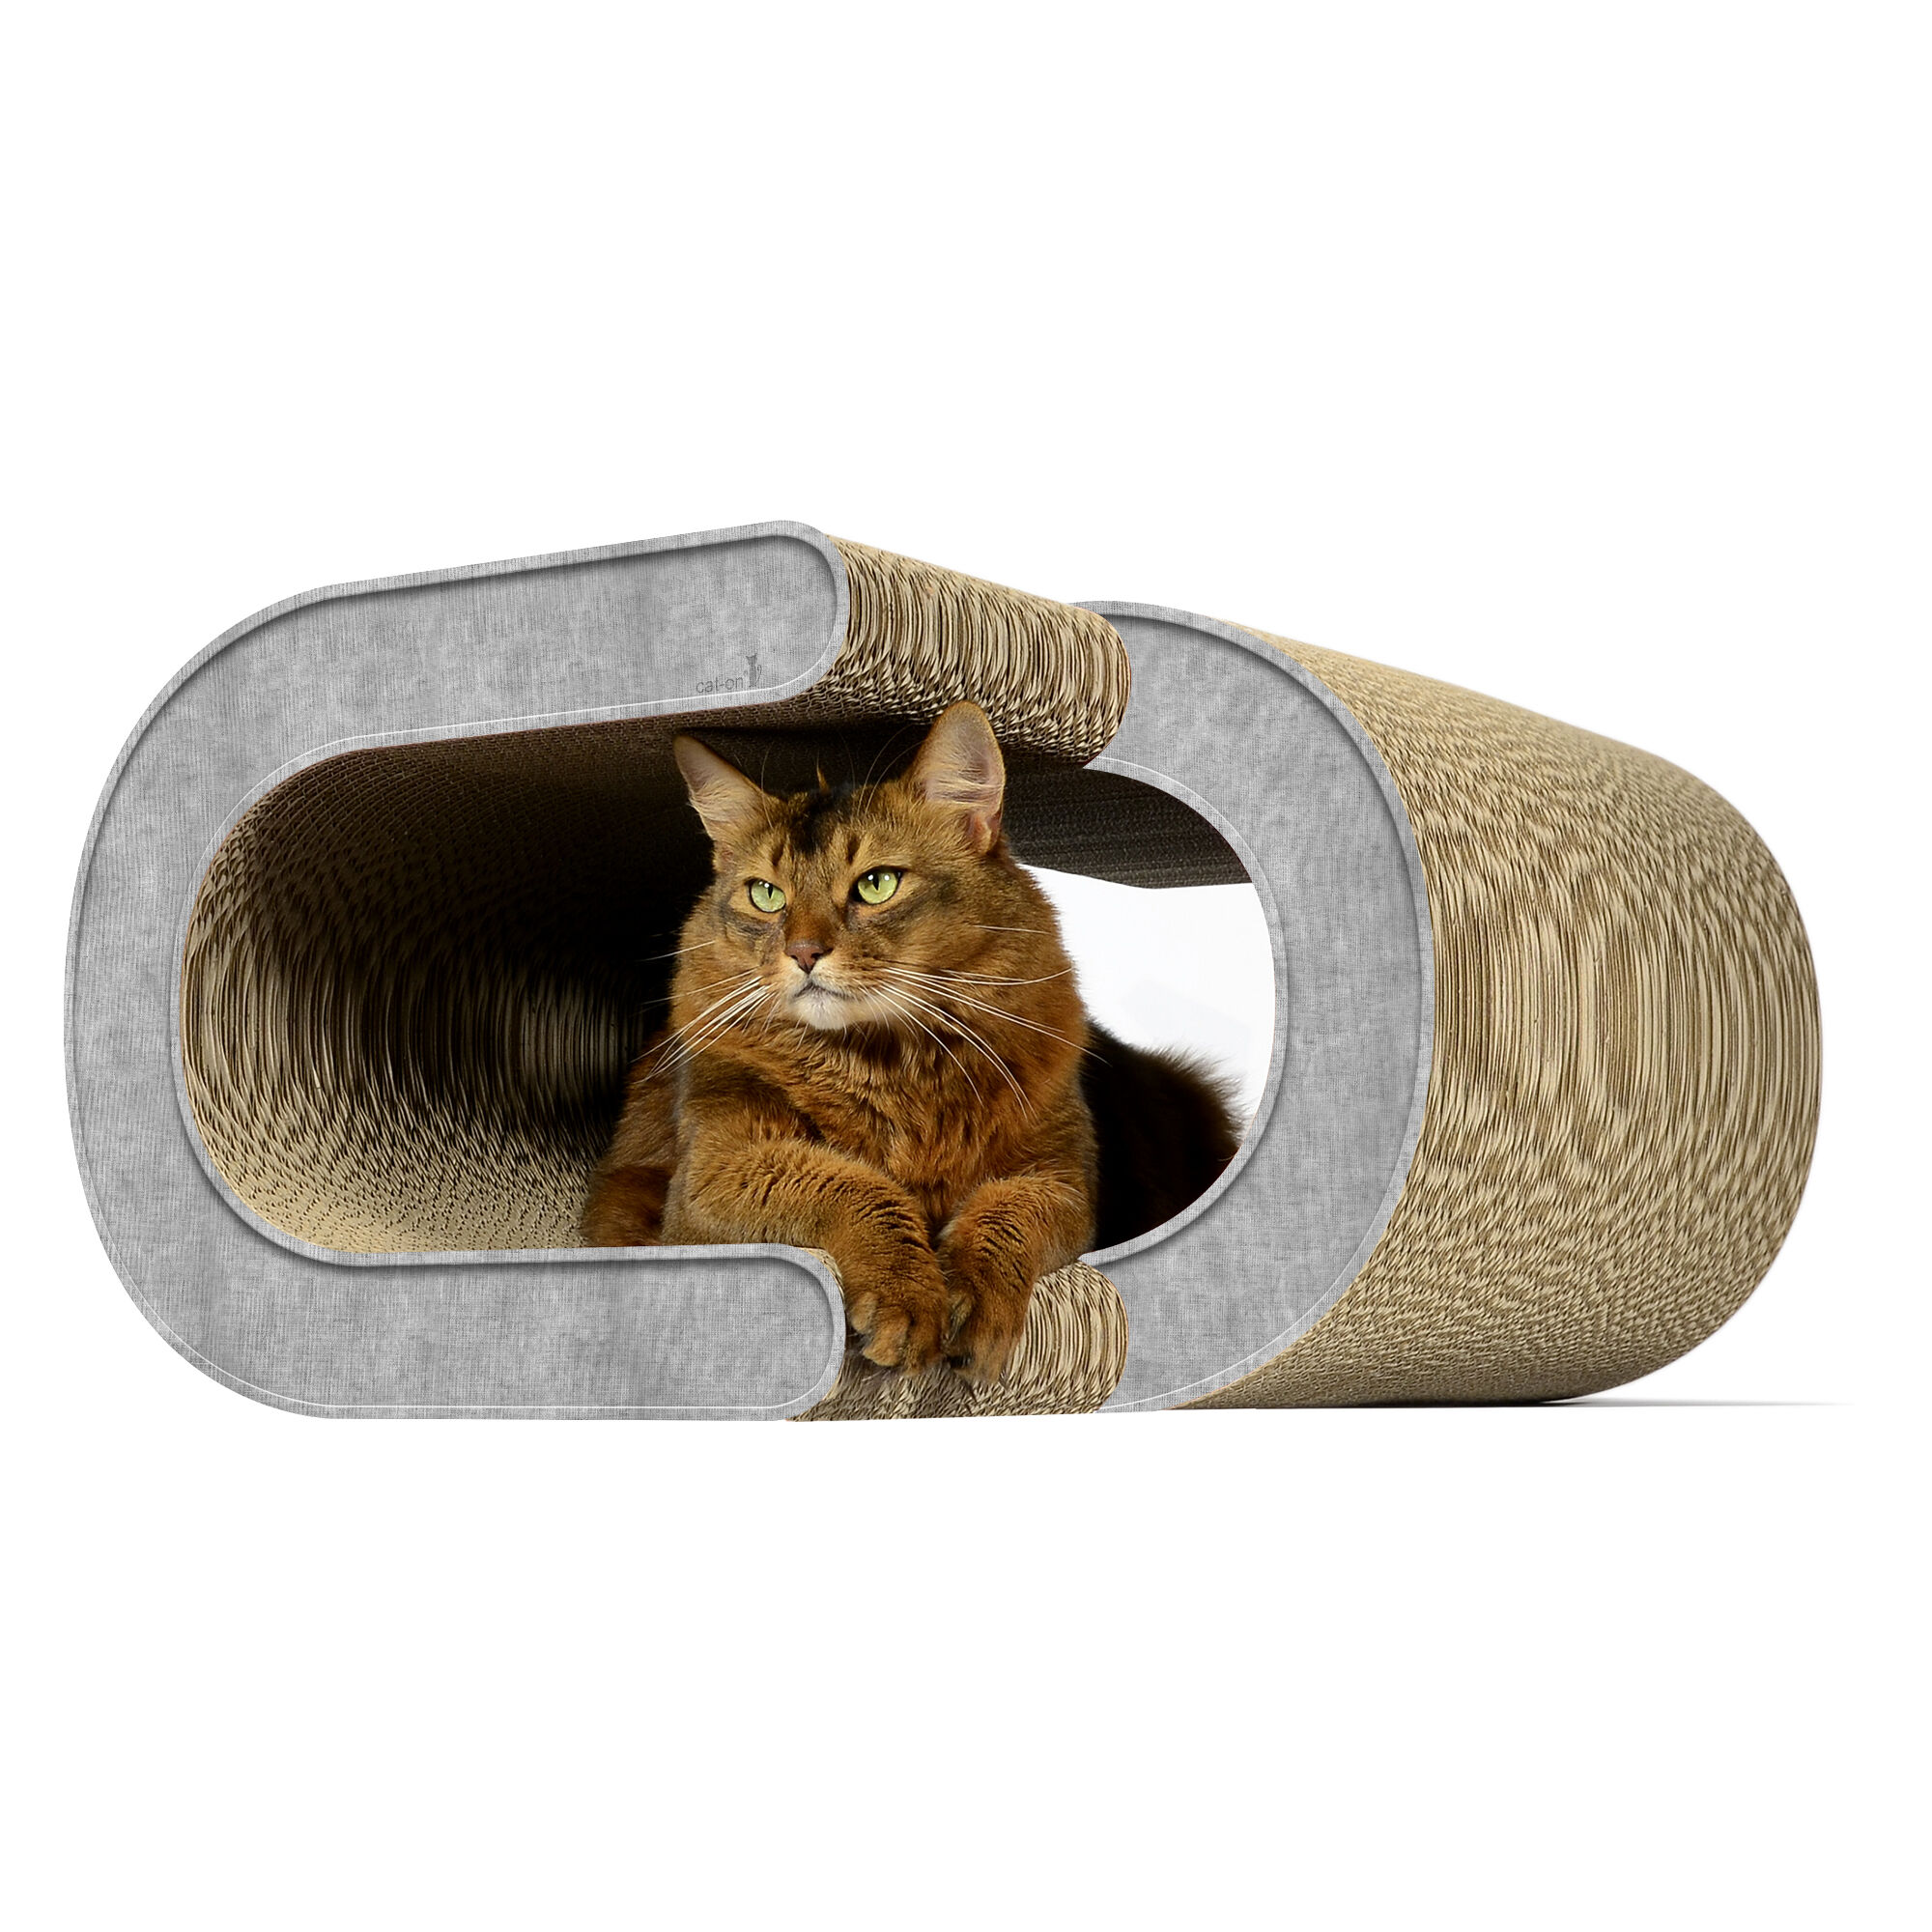 La Vague XL design cat tree